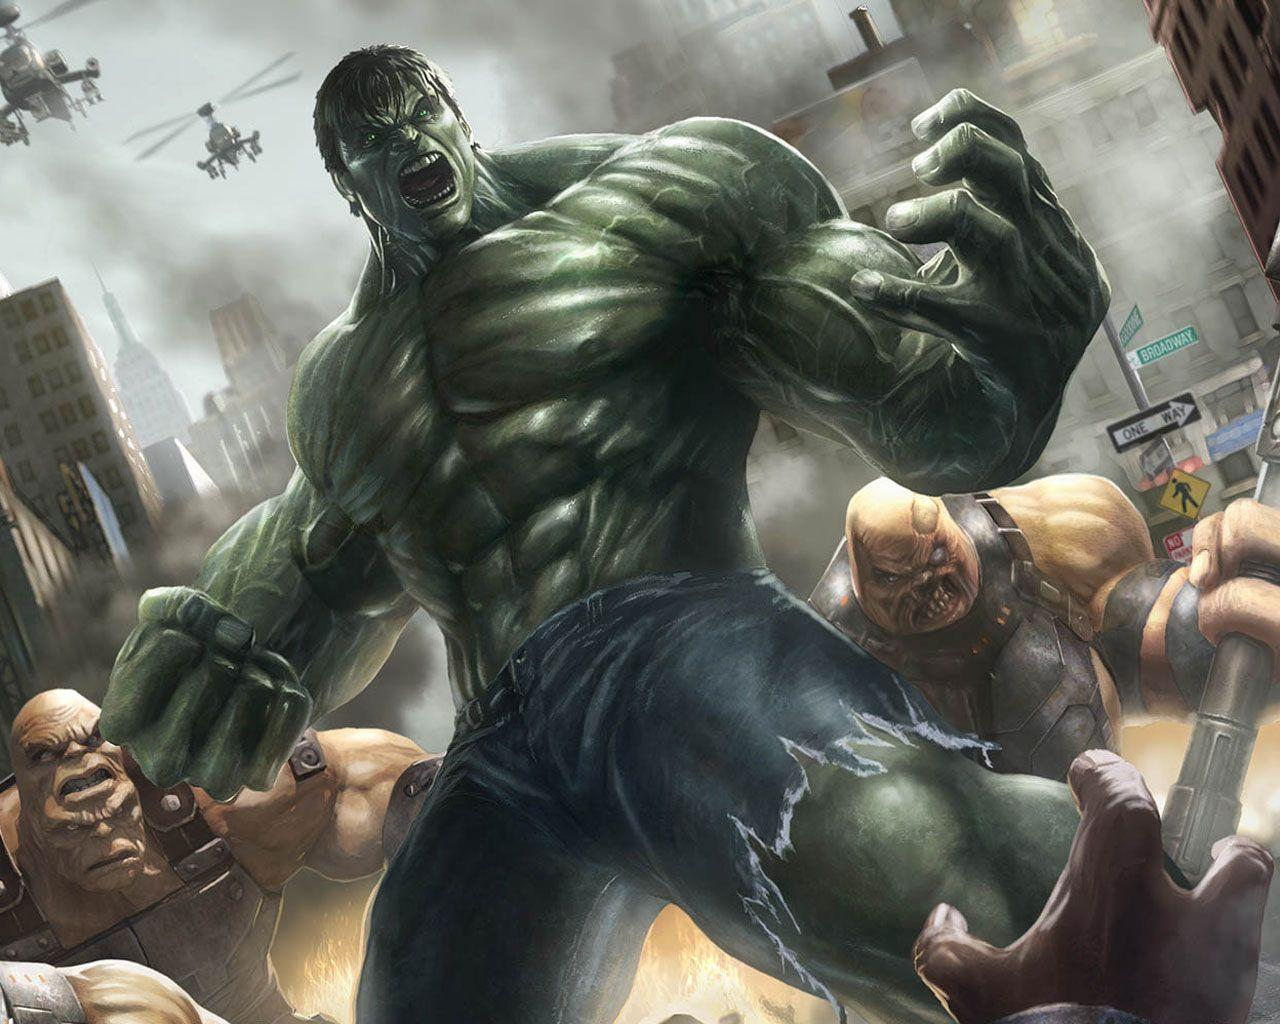 It is a picture of Sly Incredible Hulk Image